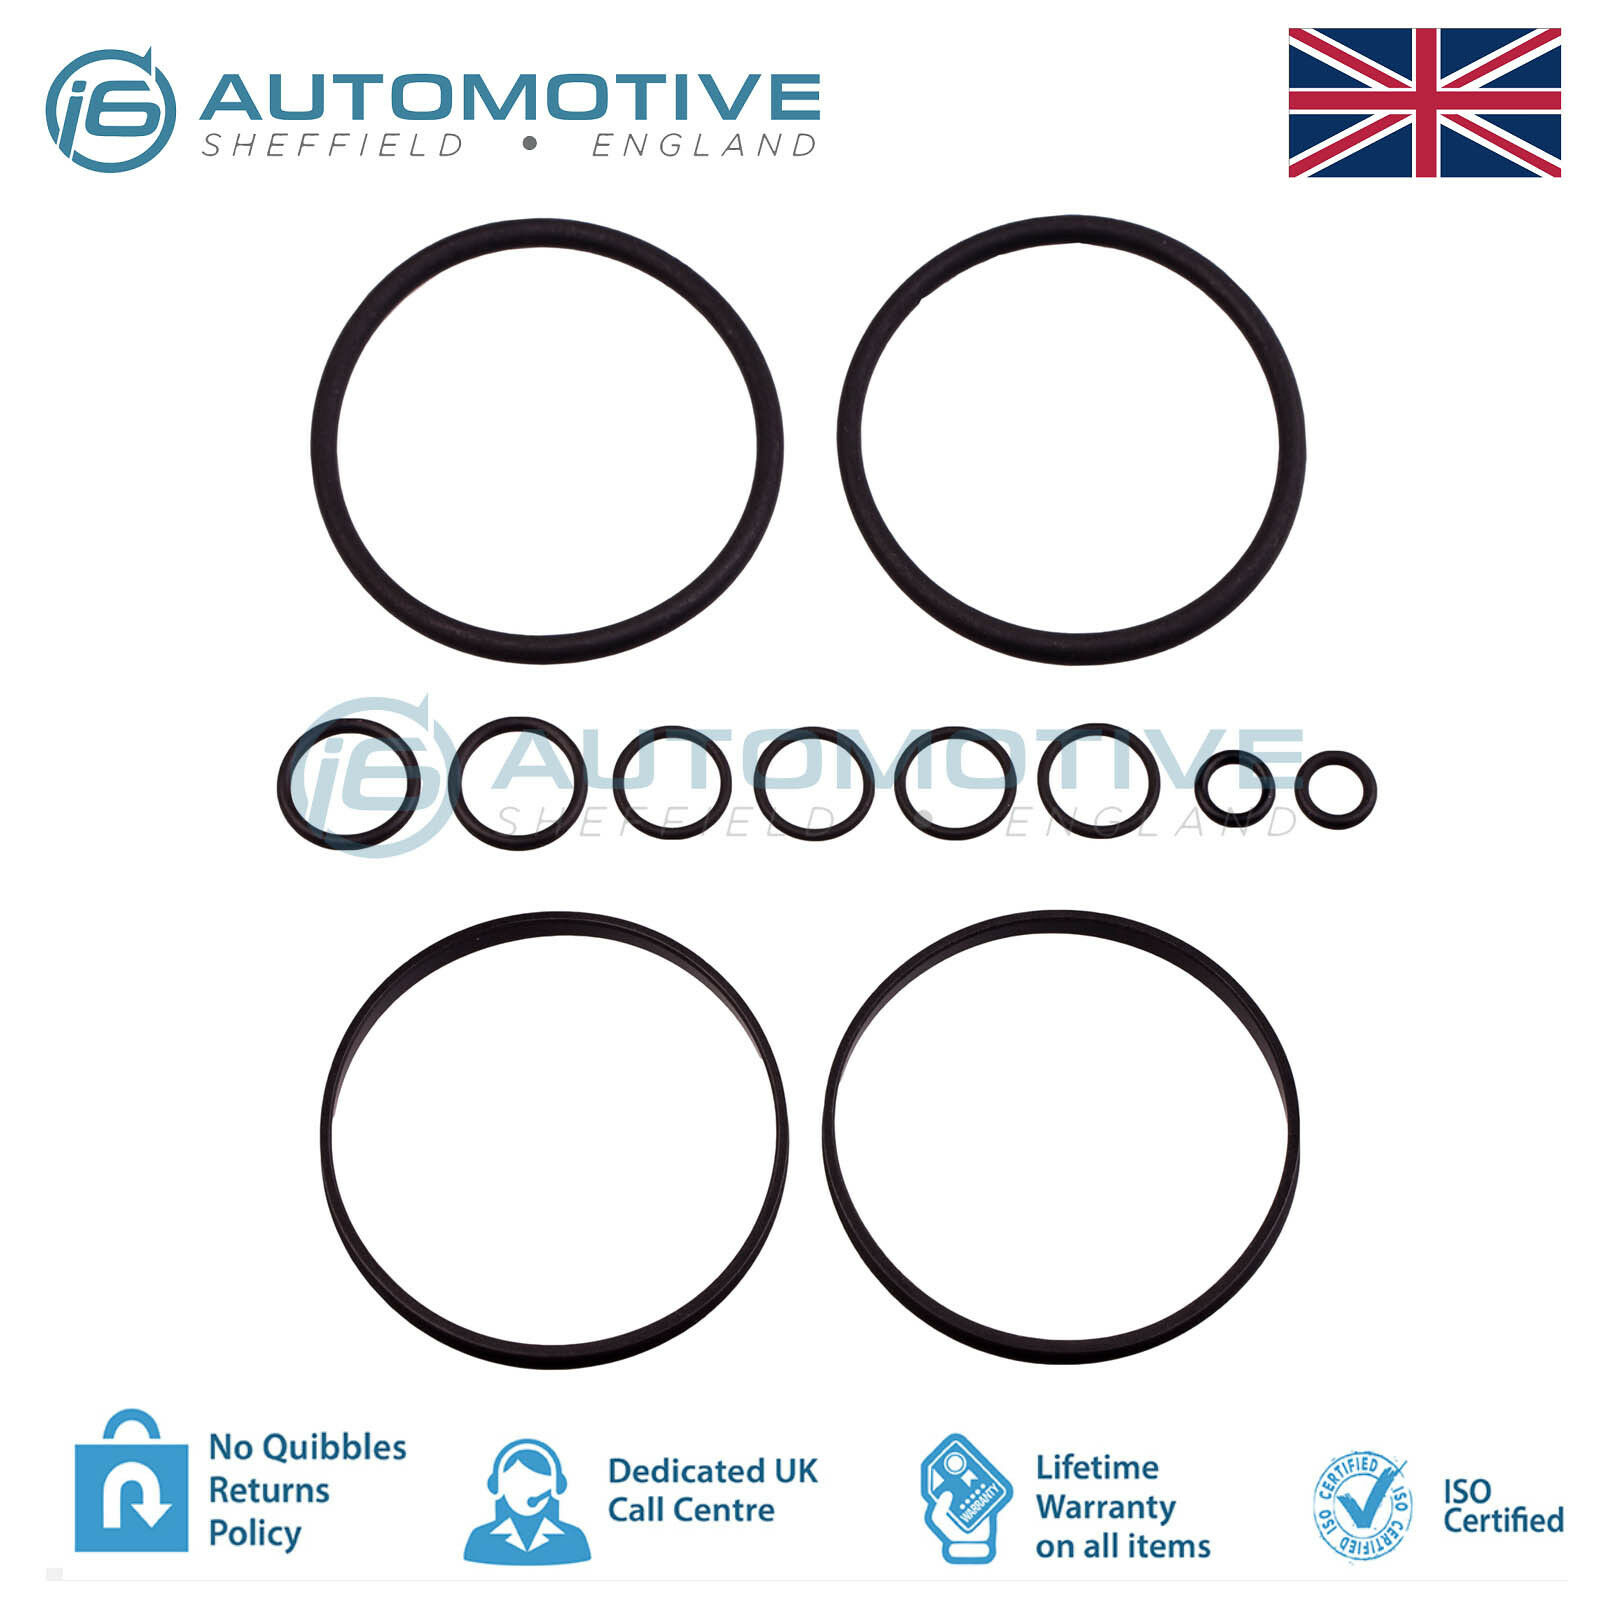 Problems With Bmw V8 Engine: BMW V8 M62TU M62 VANOS Seals Repair / Upgrade Kit